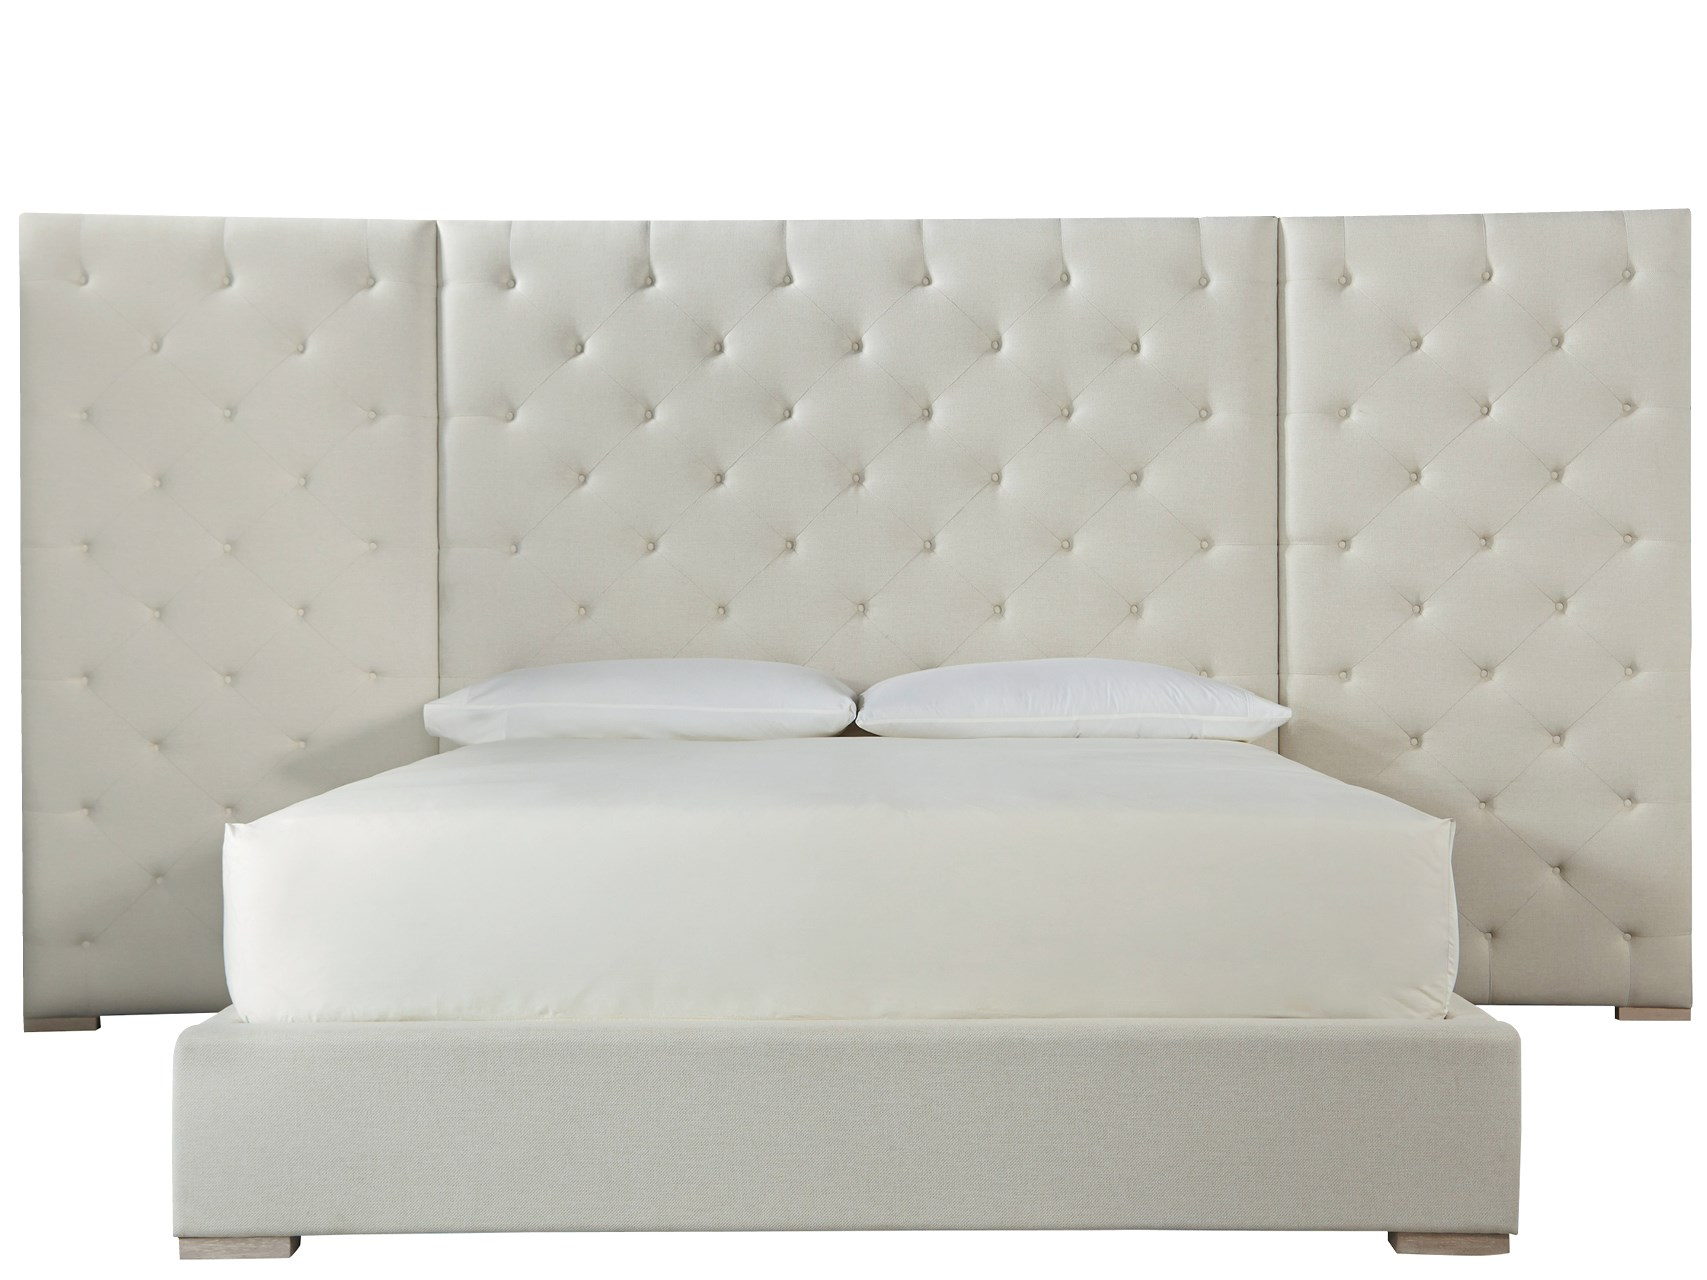 Brando King Bed with Panels